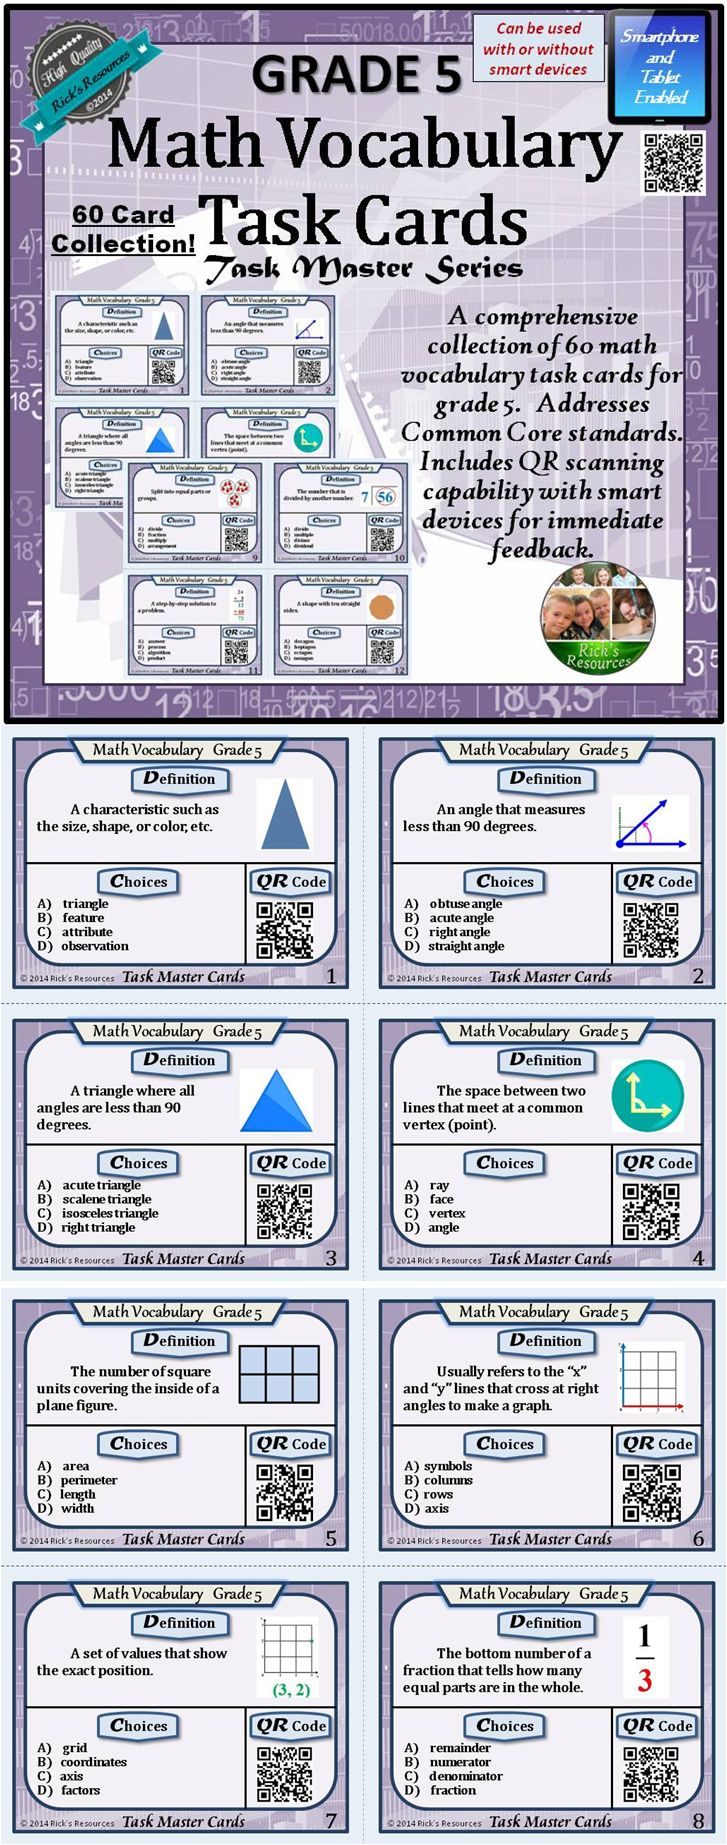 This is a comprehensive set of 60 math Common Core task cards which are smartphone and tablet enabled using the QR coding system. The cards will also workwithout smart technology. Included is a student tracking sheet and an answer key for all 60 problems.  The cards include 60 critical Common Core math vocabulary terms that fifth graders should master. The task cards are very versatile and can be used with the entire class, small groups, centers, homeschooling, or with individual students. $